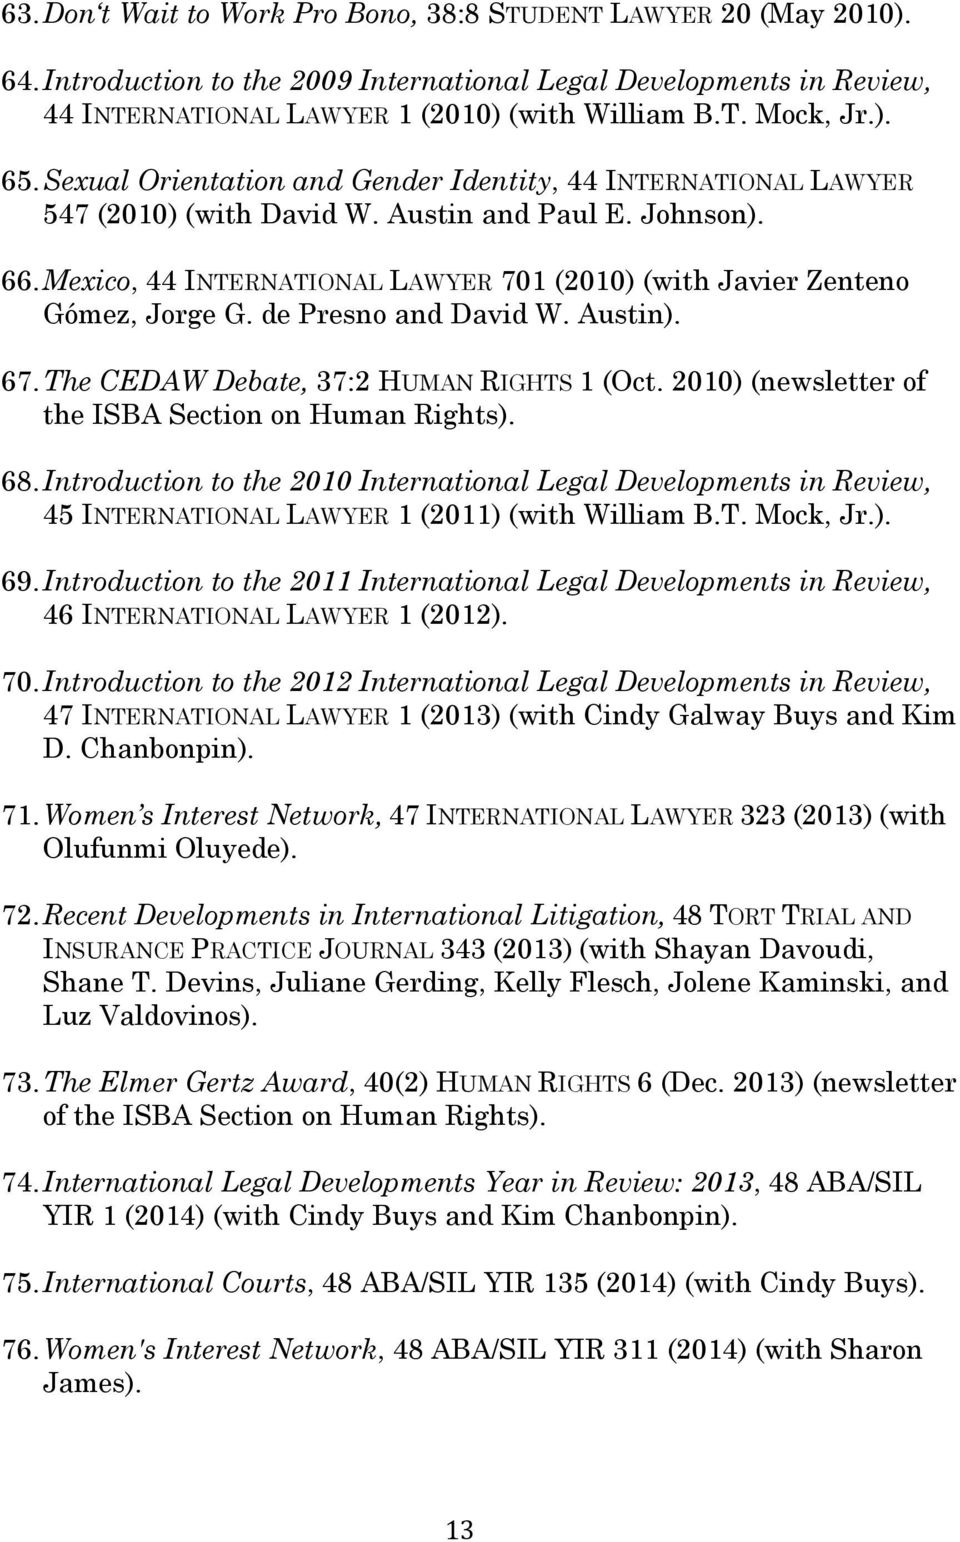 Mexico, 44 INTERNATIONAL LAWYER 701 (2010) (with Javier Zenteno Gómez, Jorge G. de Presno and David W. Austin). 67. The CEDAW Debate, 37:2 HUMAN RIGHTS 1 (Oct.